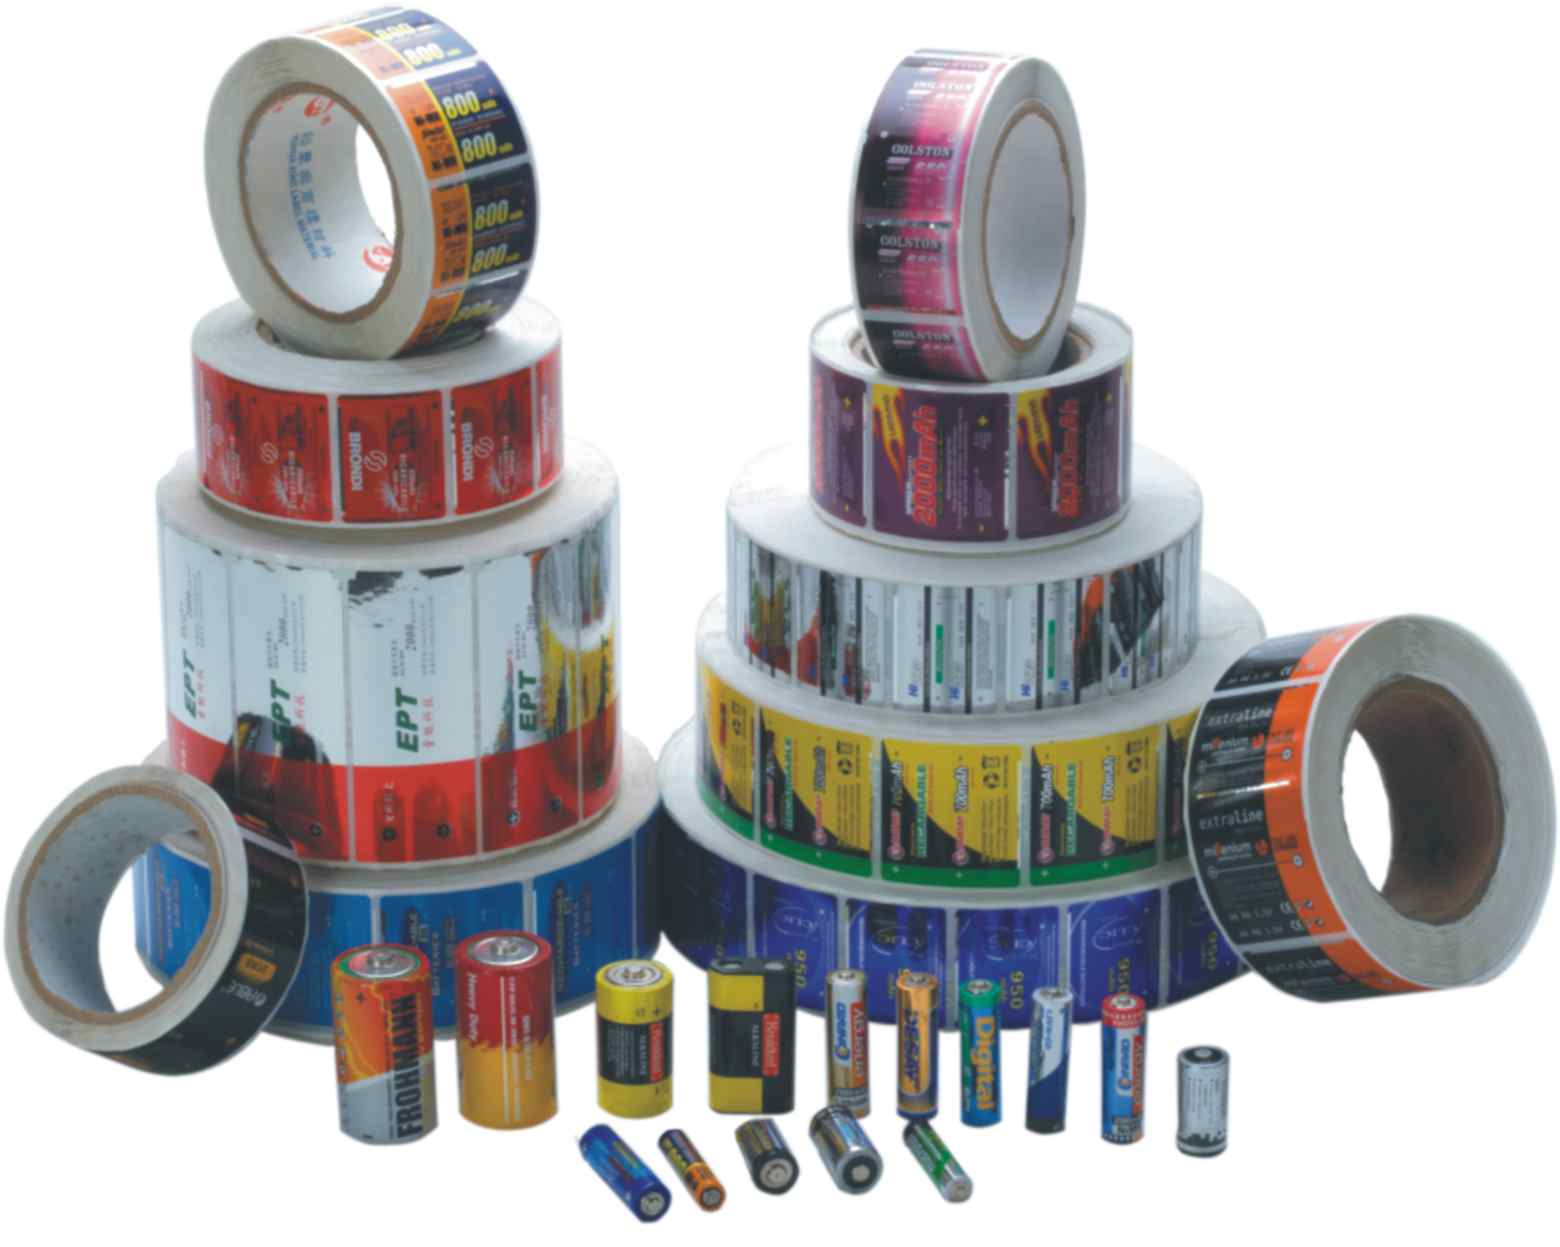 Design and print labels